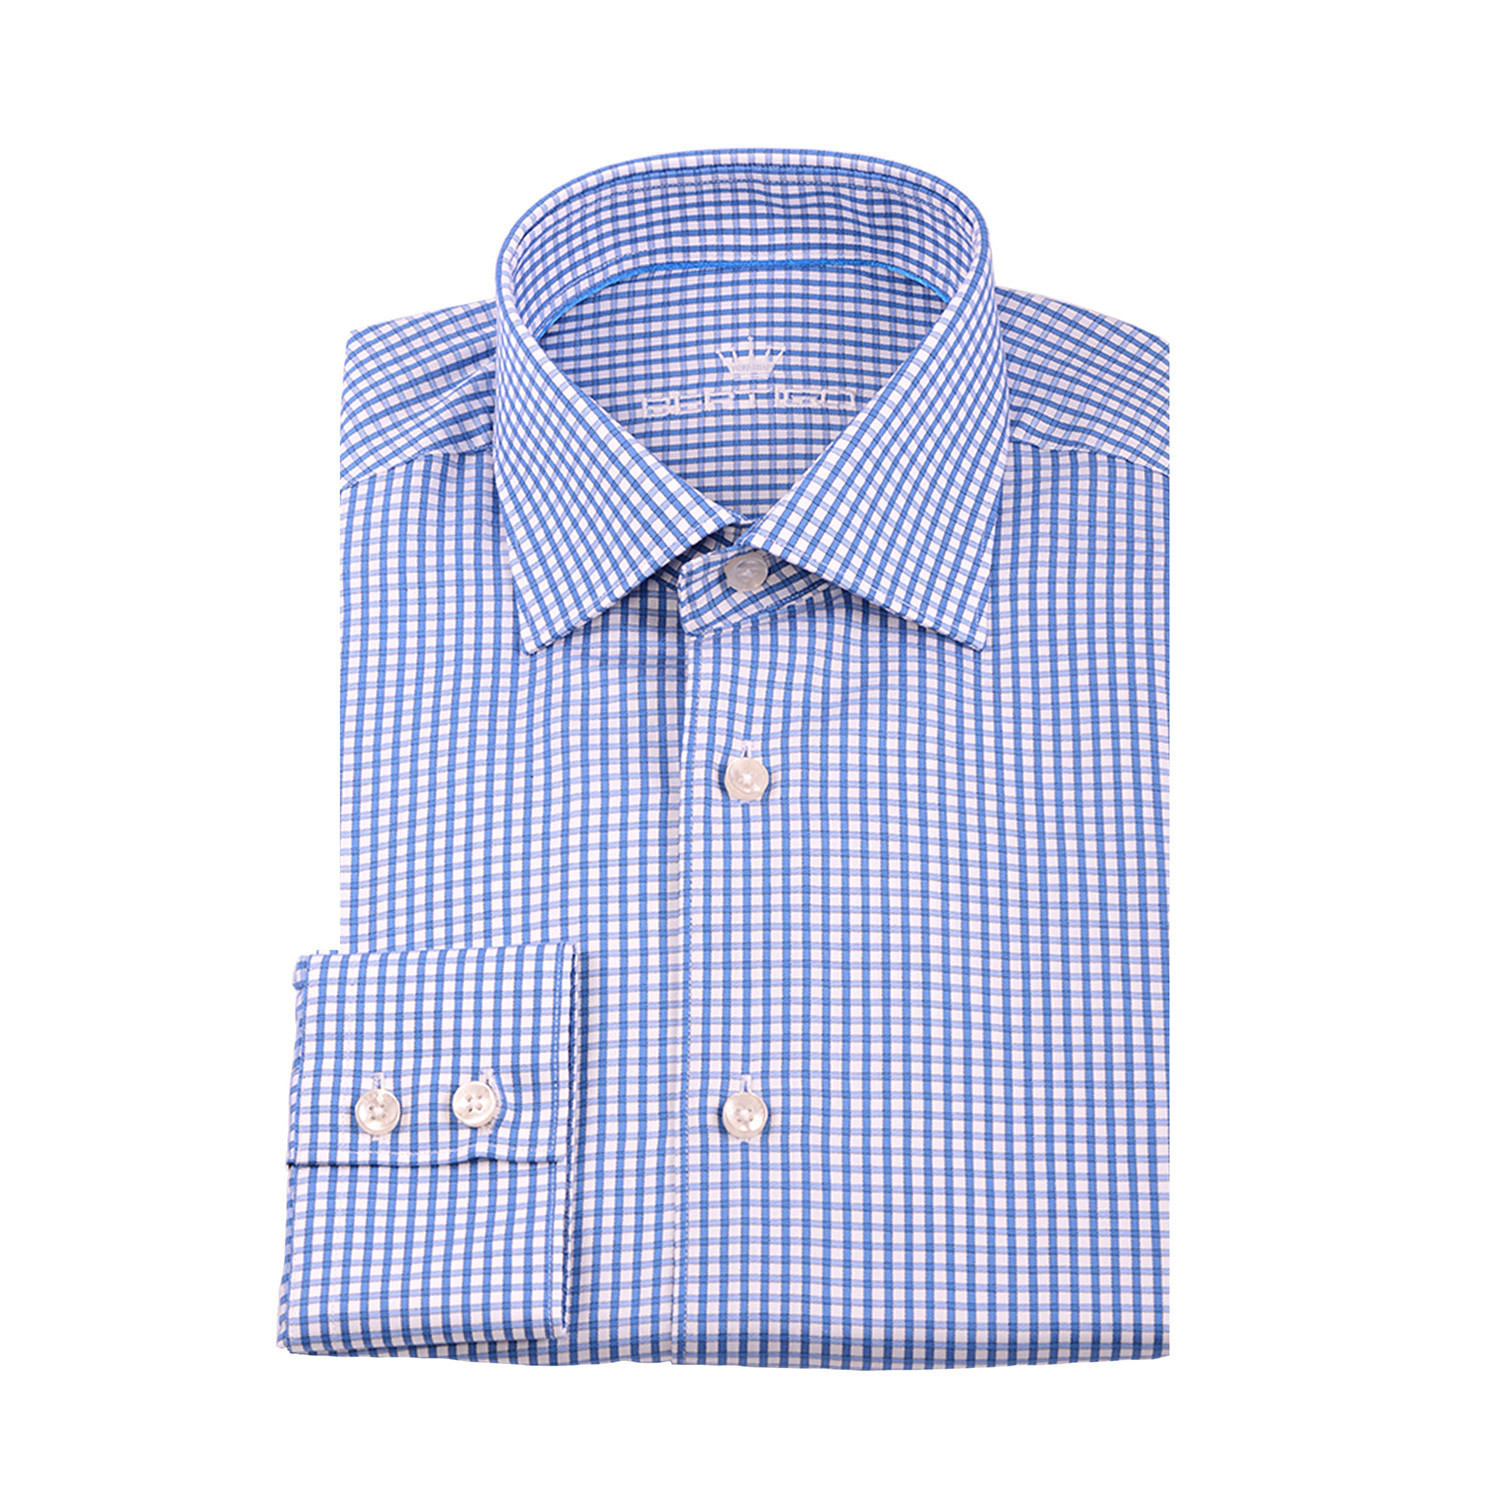 Karl button up shirt tiny navy blue gingham on white for Navy blue gingham shirt